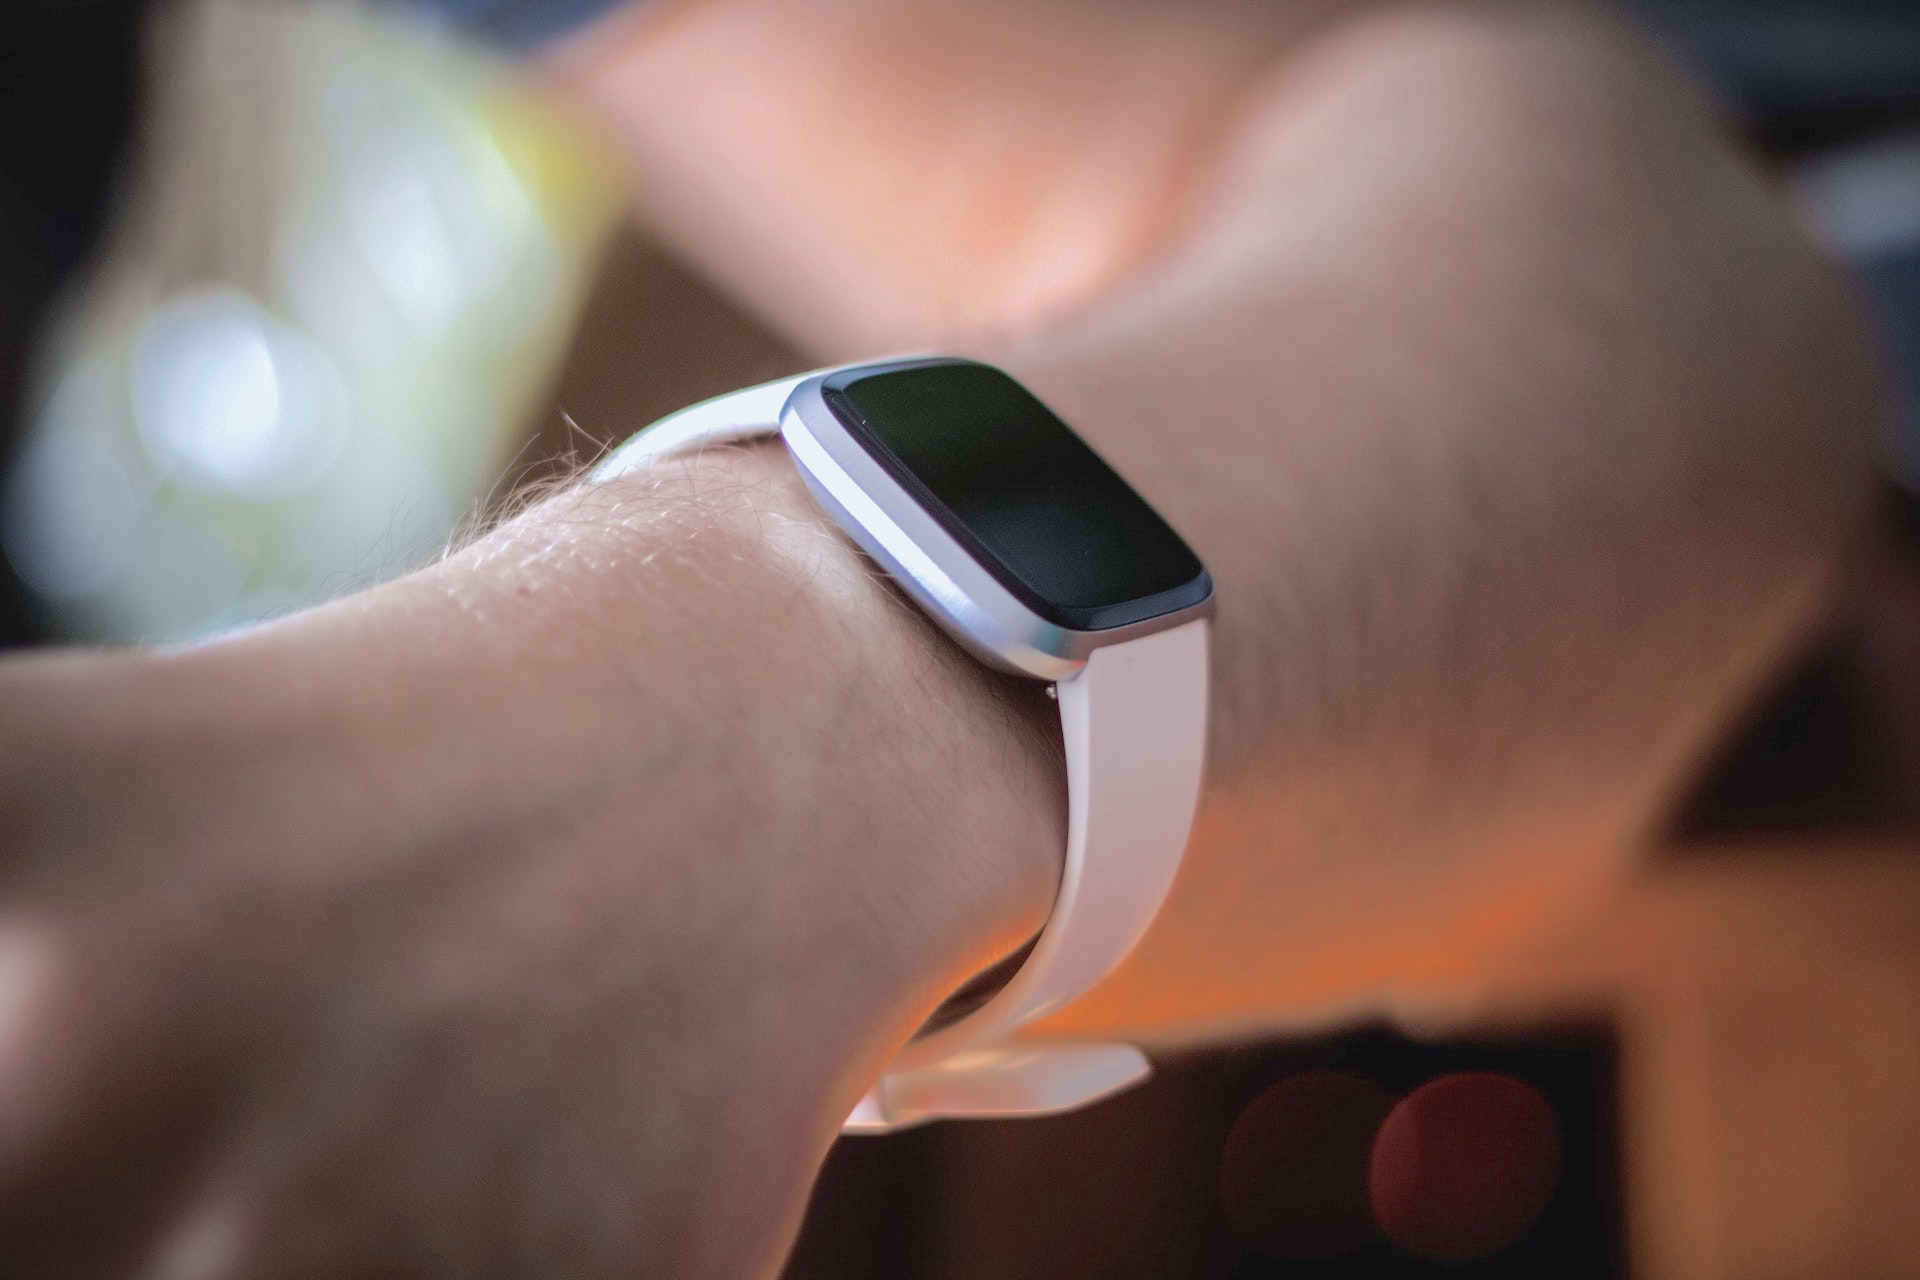 A user's wrist wearing a Fitbit smart watch.